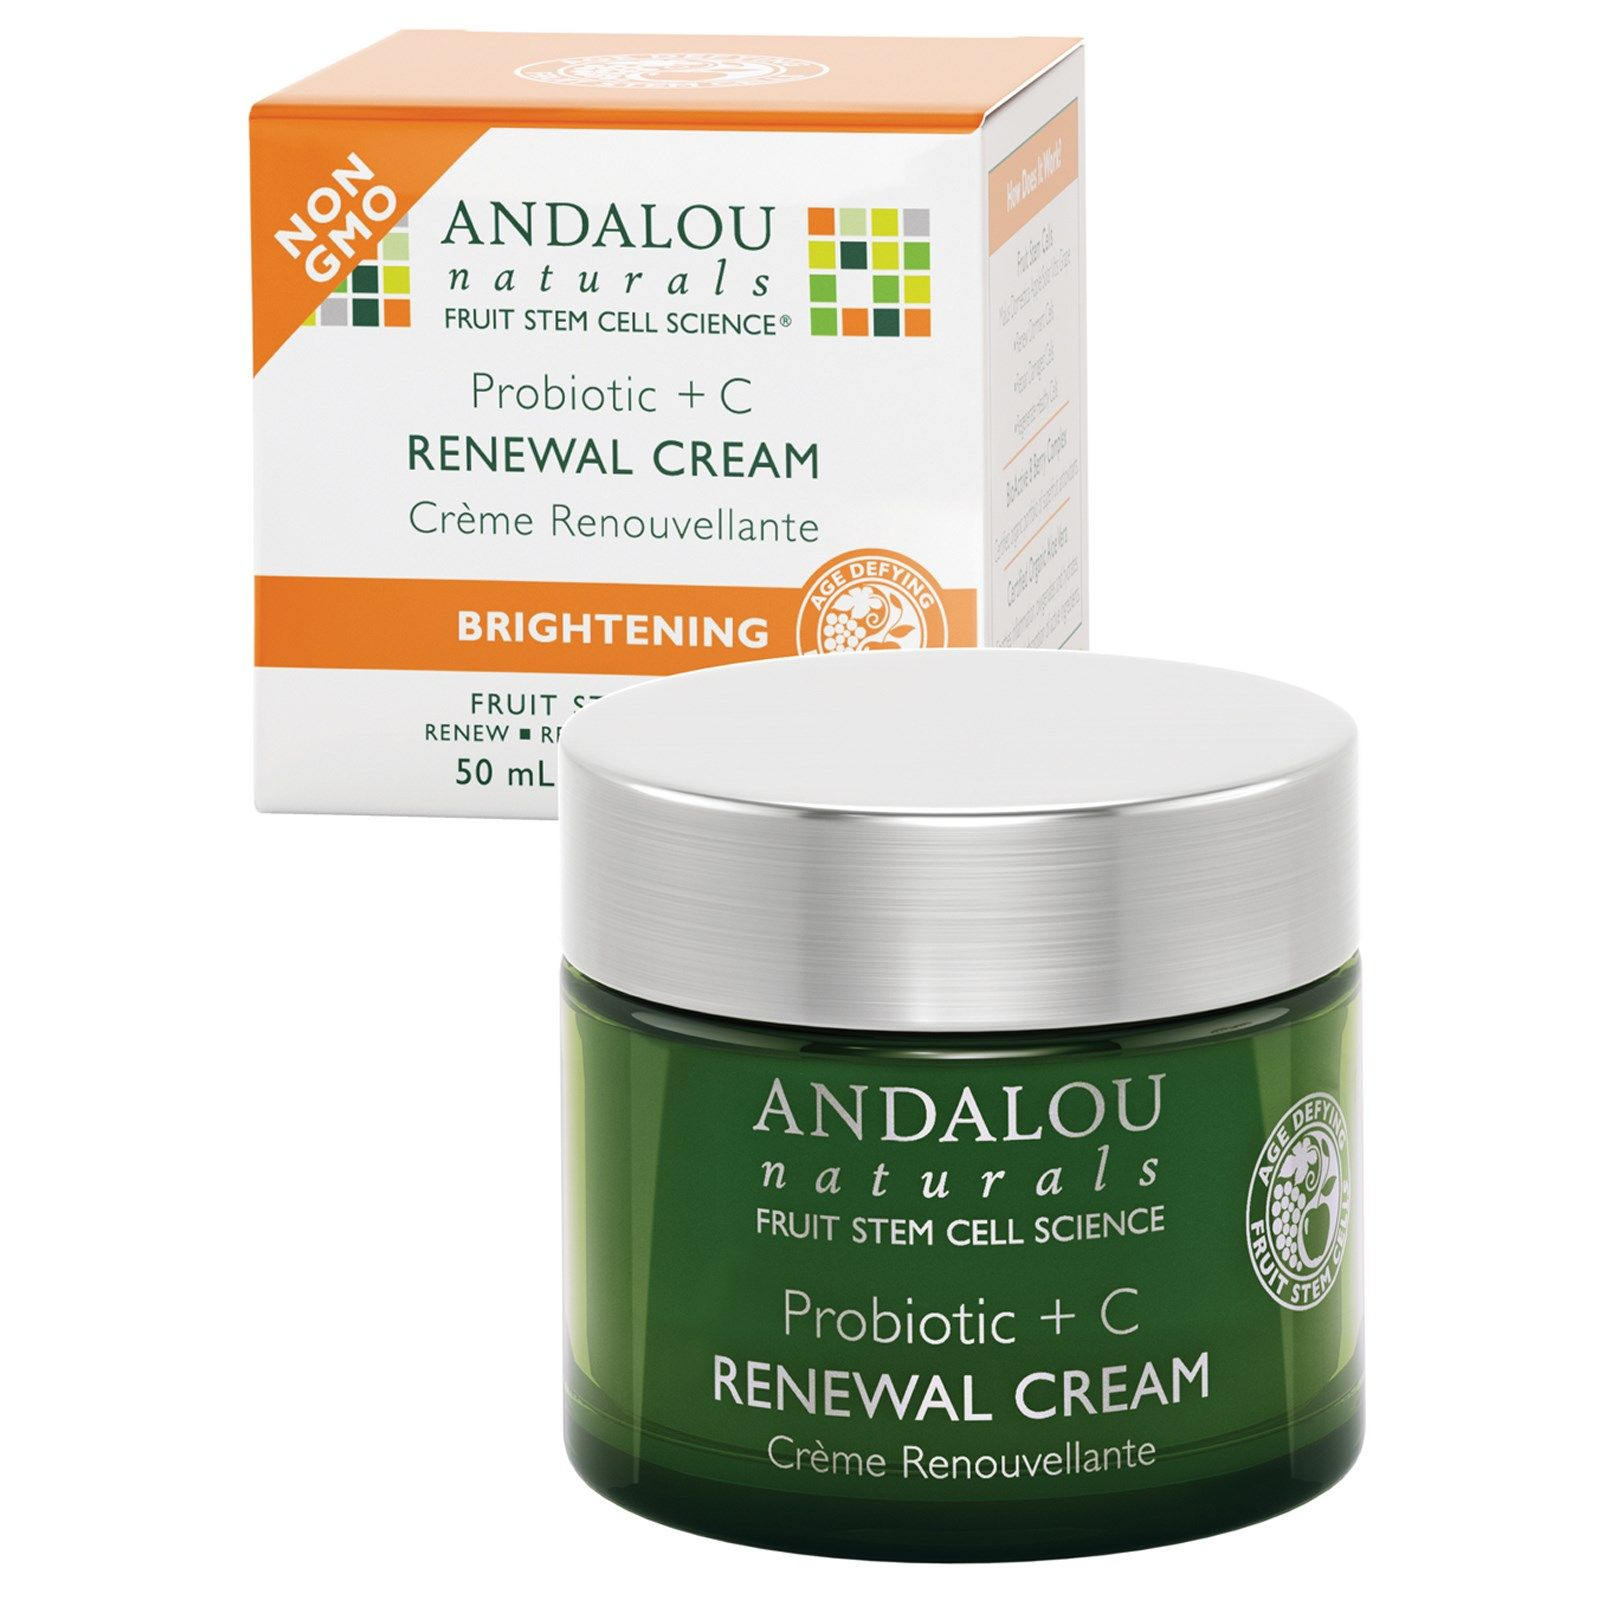 Brightening Probiotic + C Renewal Cream - 1.7 oz. by Andalou Naturals (pack of 2) Moisture Skin Cleansing Cream 6.76oz